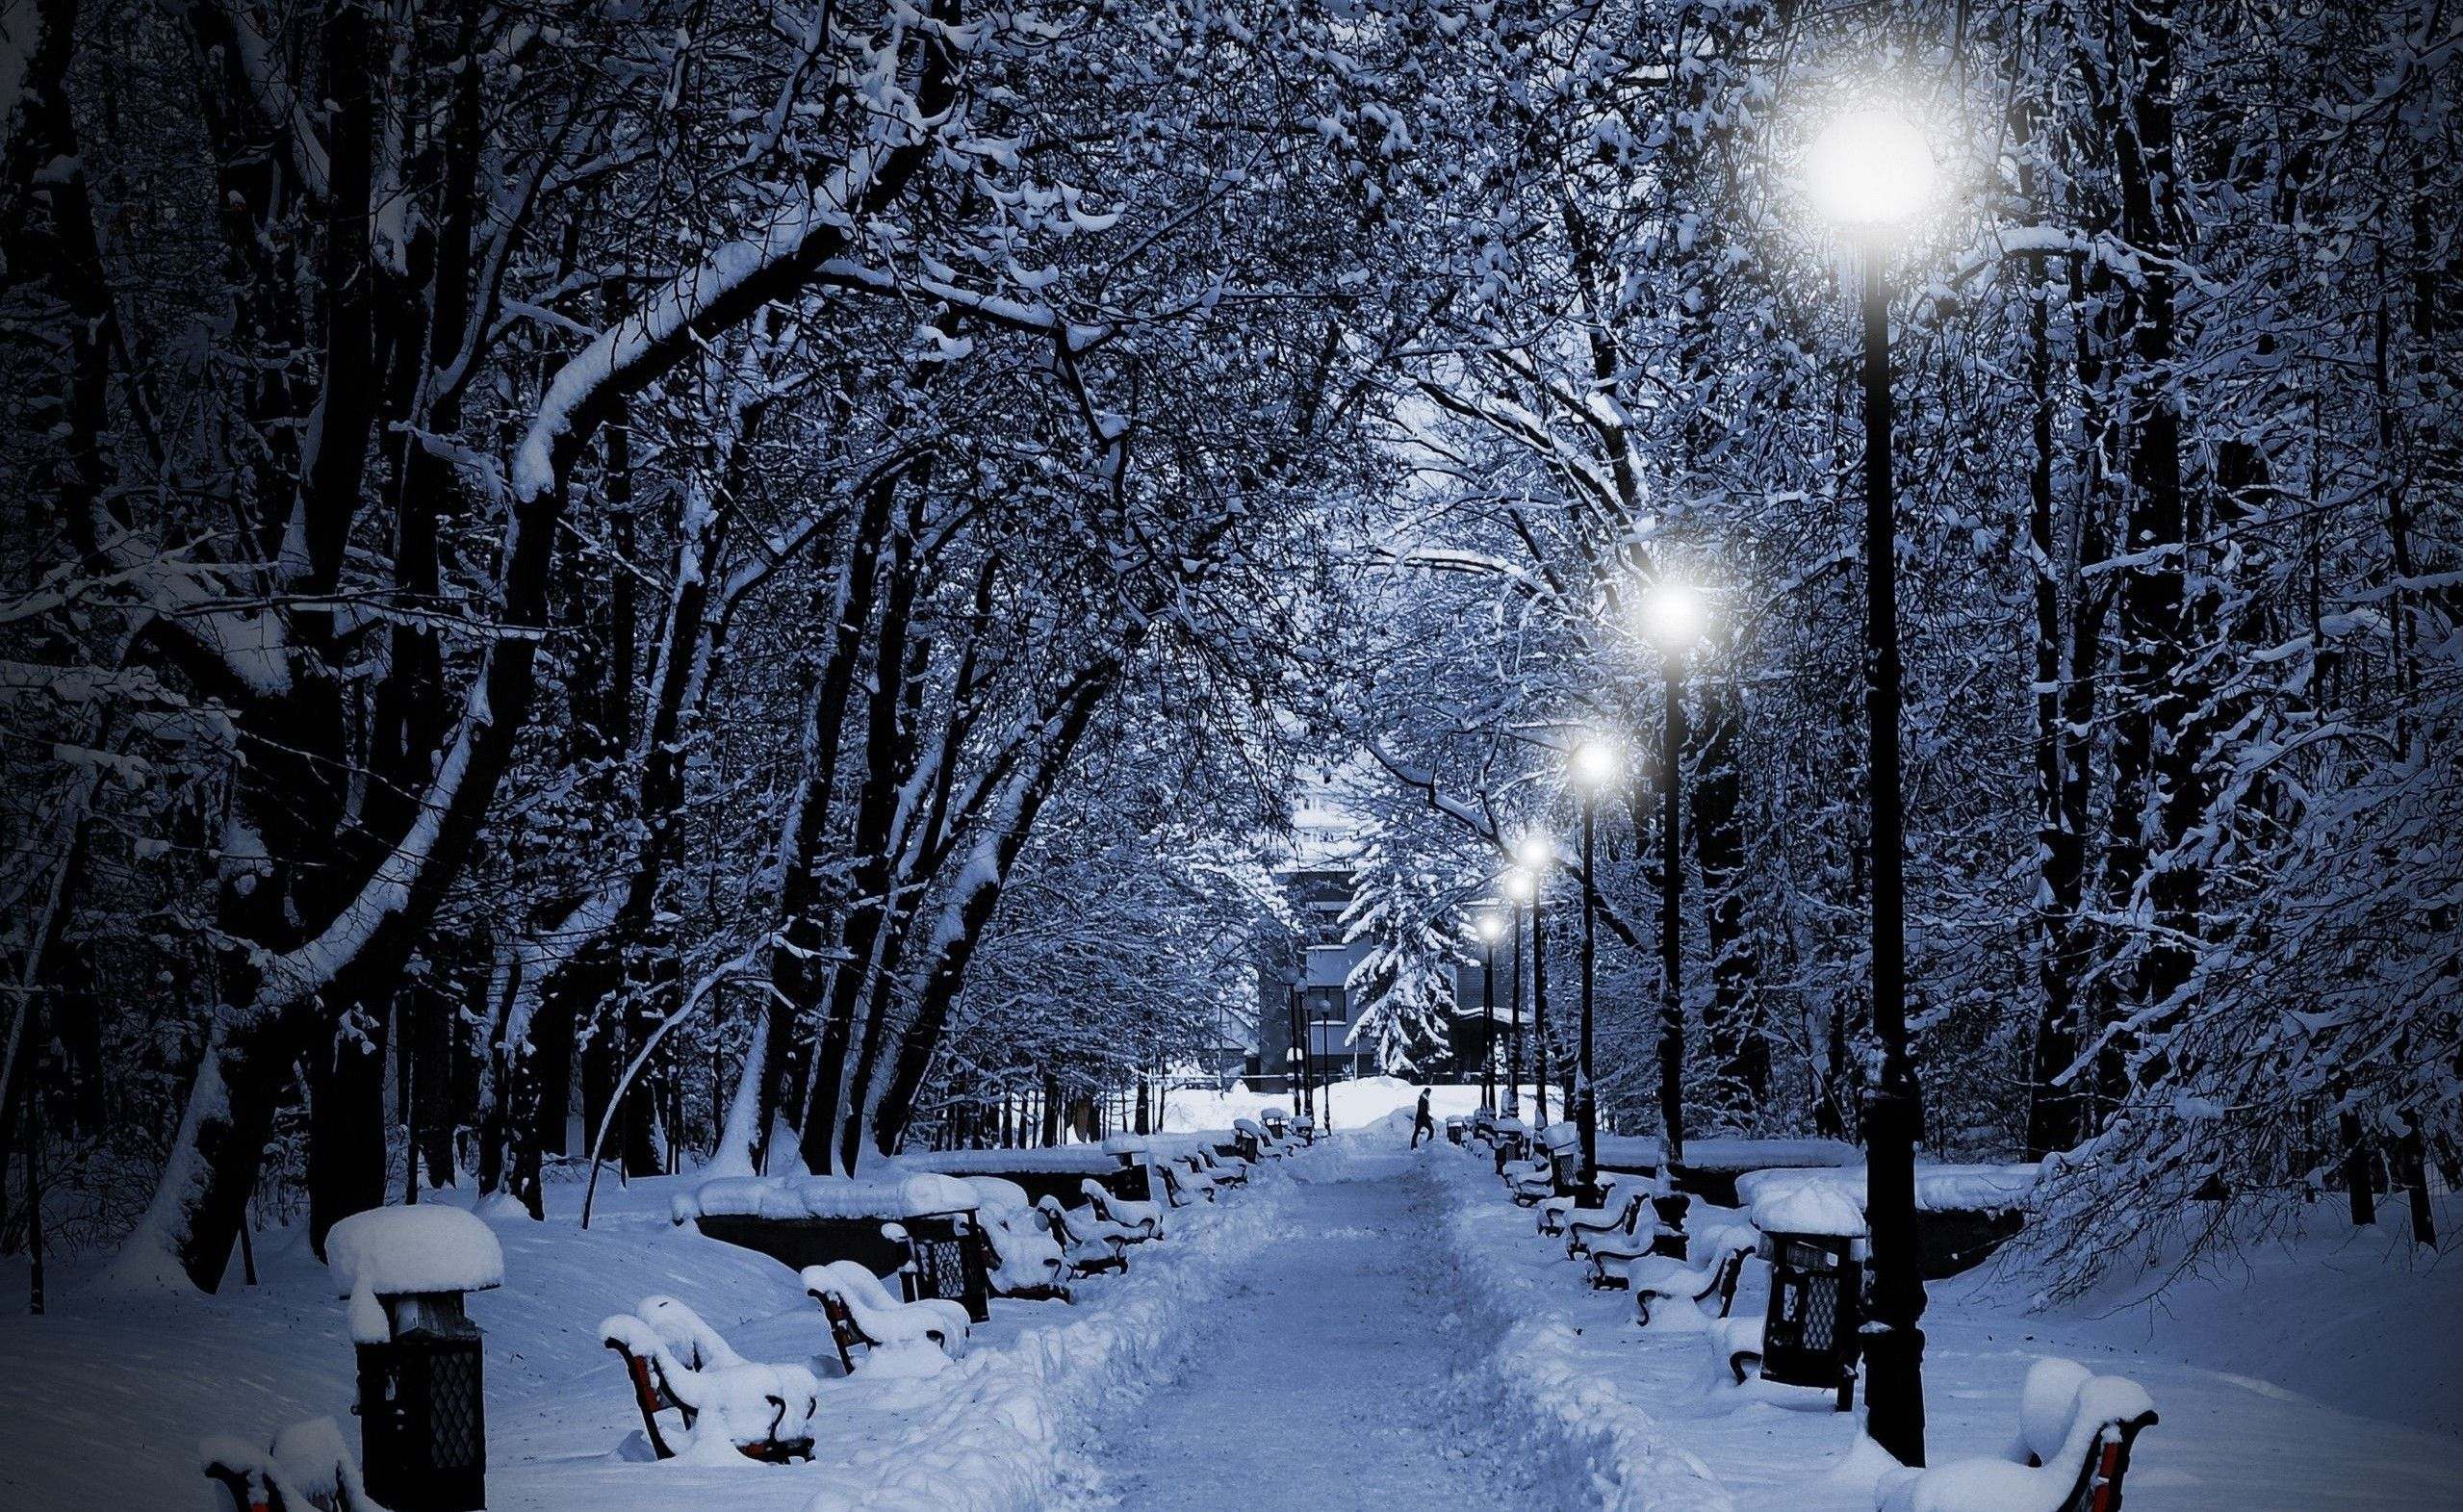 winter snowy nights 2559 1571 magical moments pinterest